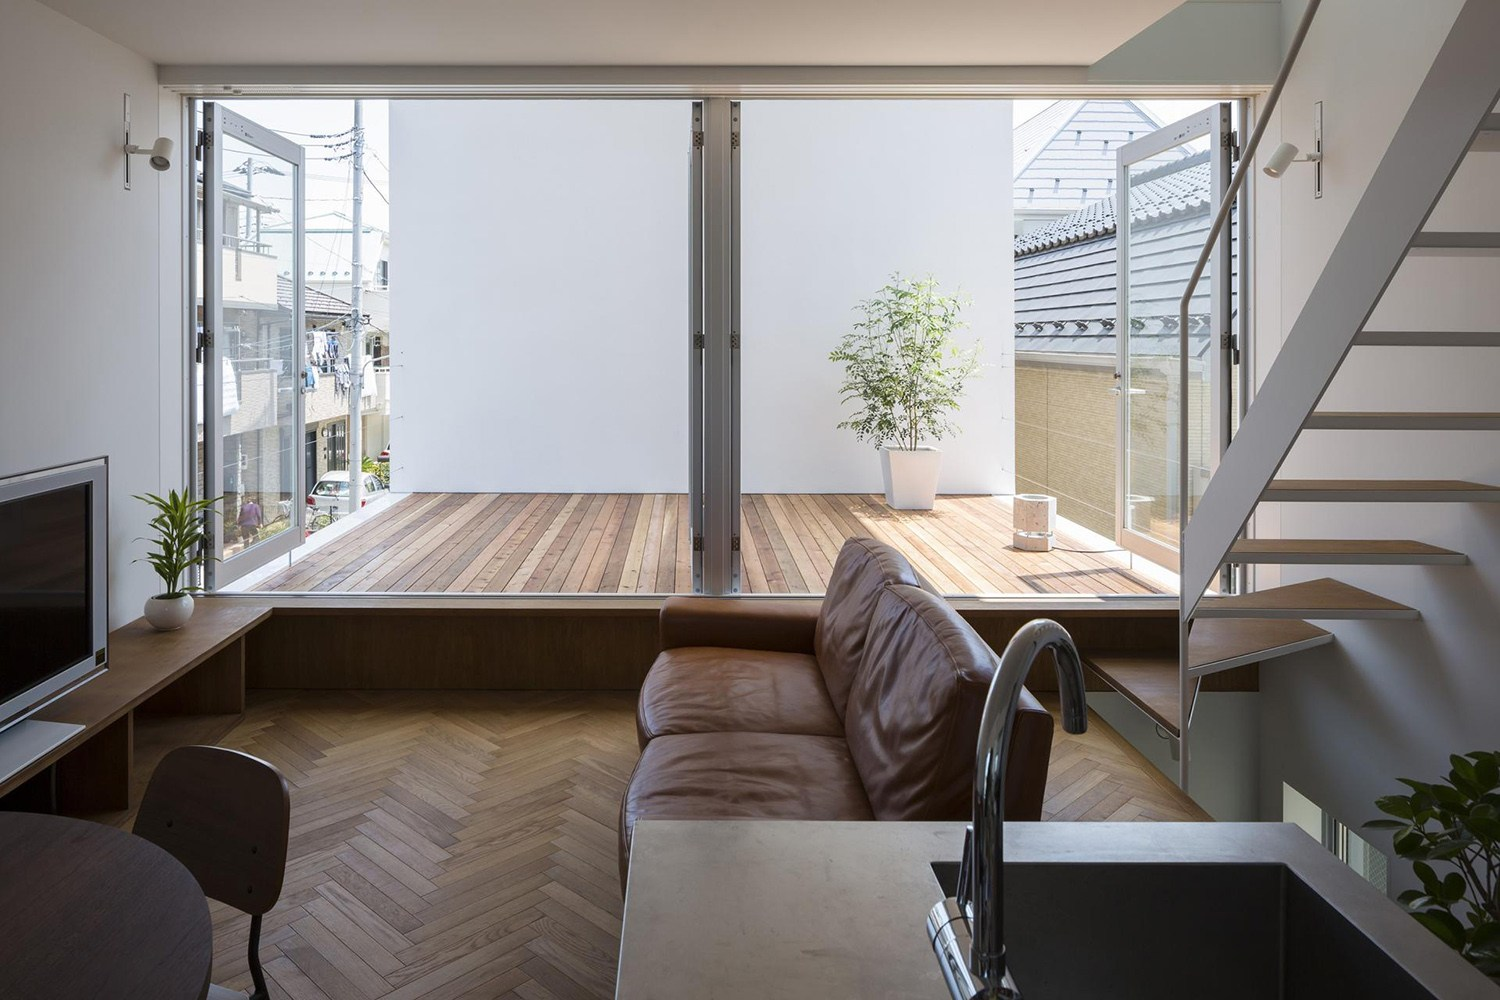 little_house_with_a_big_terrace_by_takuro_yamamoto_6.jpg